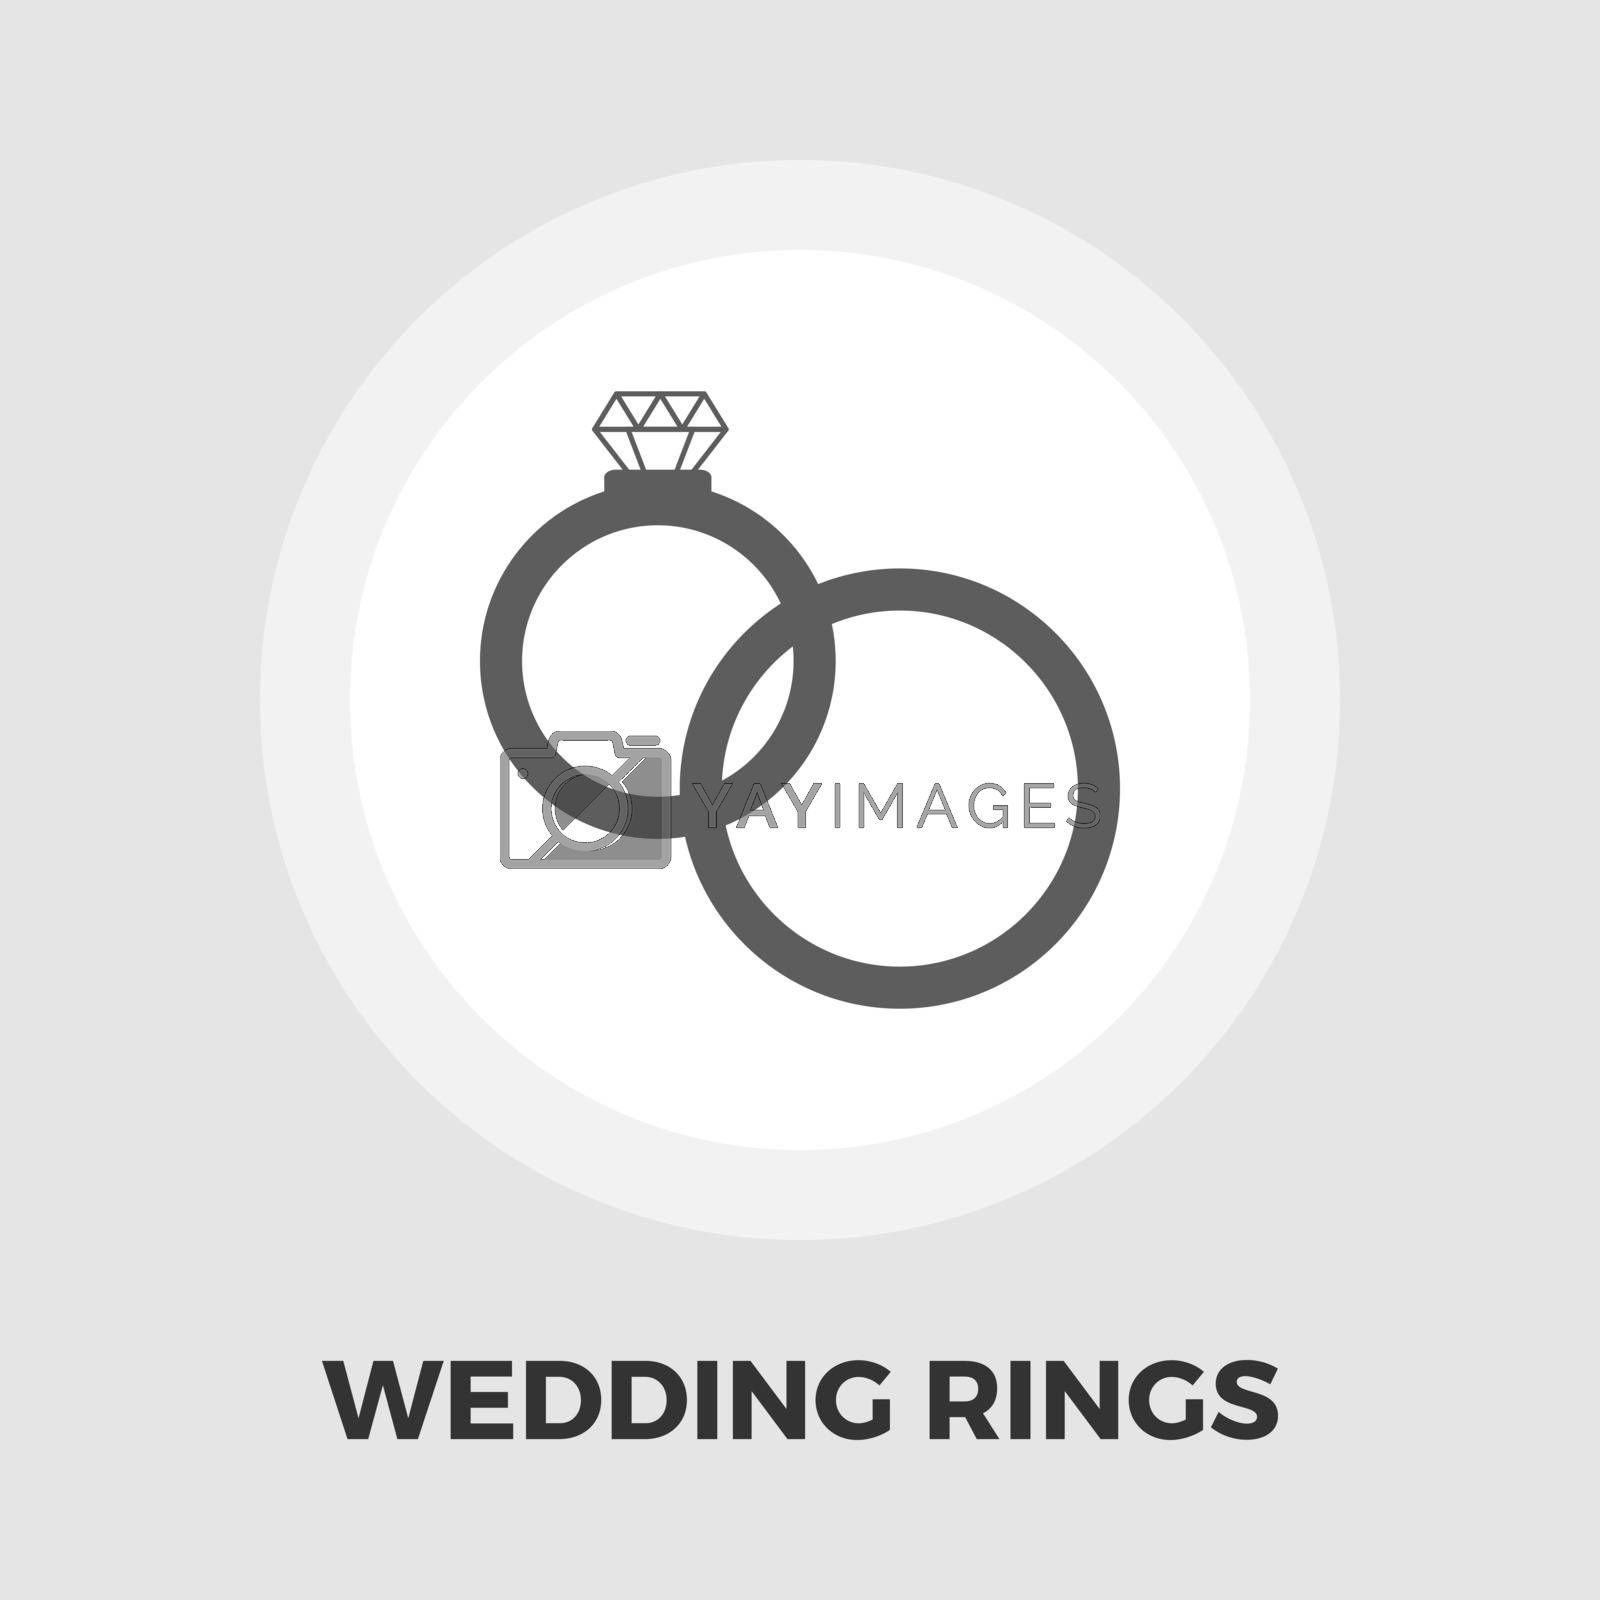 Wedding rings icon vector. Flat icon isolated on the white background. Editable EPS file. Vector illustration.